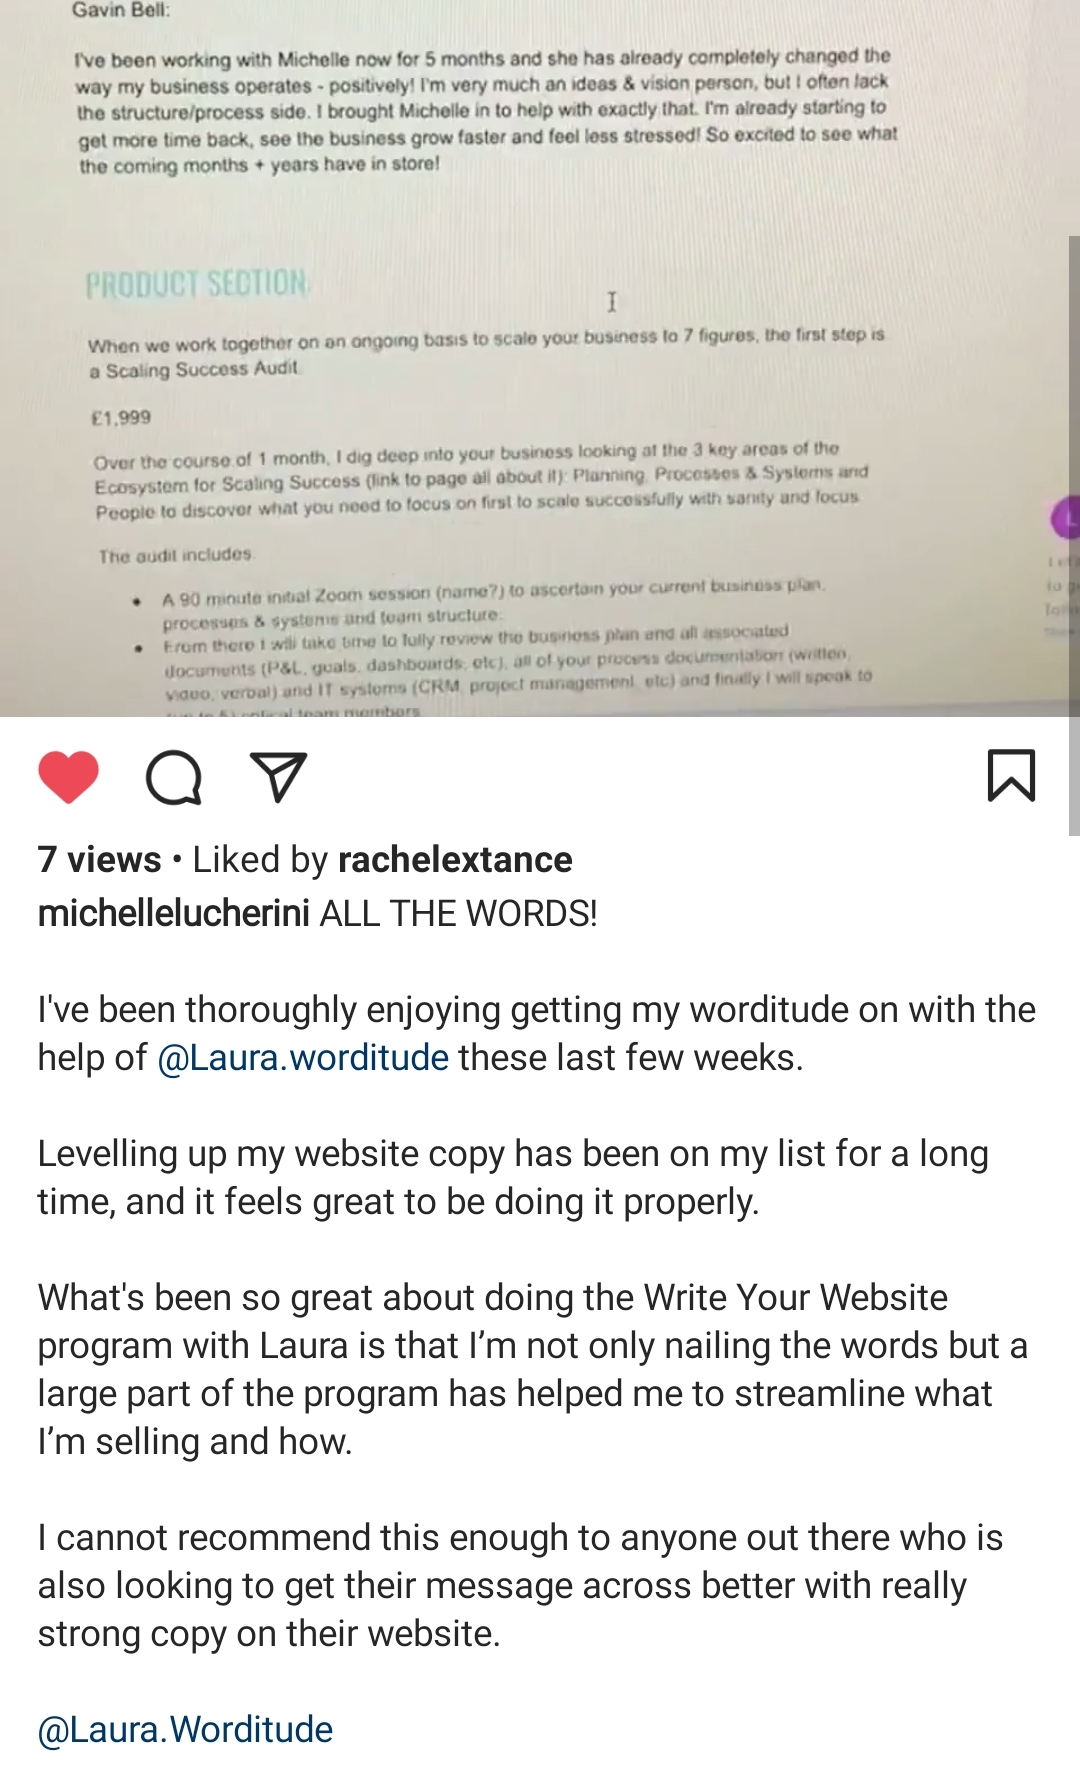 Testimonial from Michelle Lucherini - What's been so great about doing the Write Your Website program with Laura is that I'm not only nailing the words but a large part of the program has helped me to streamline what I'm selling and how.